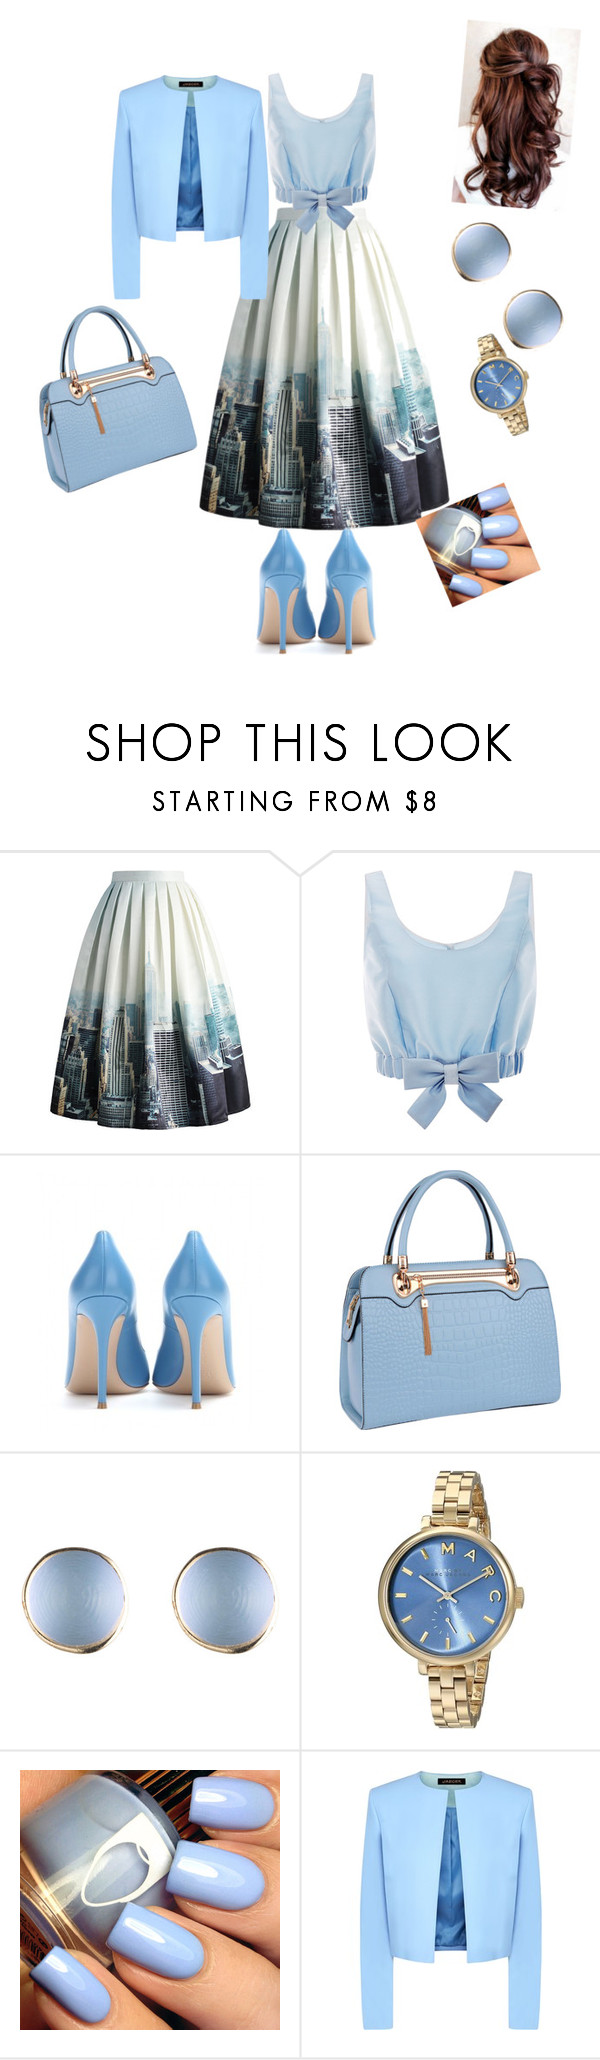 """Untitled #104"" by evonnunoo ❤ liked on Polyvore featuring Chicwish, Honor, Gianvito Rossi, Relaxfeel, Marc Jacobs and Jaeger"